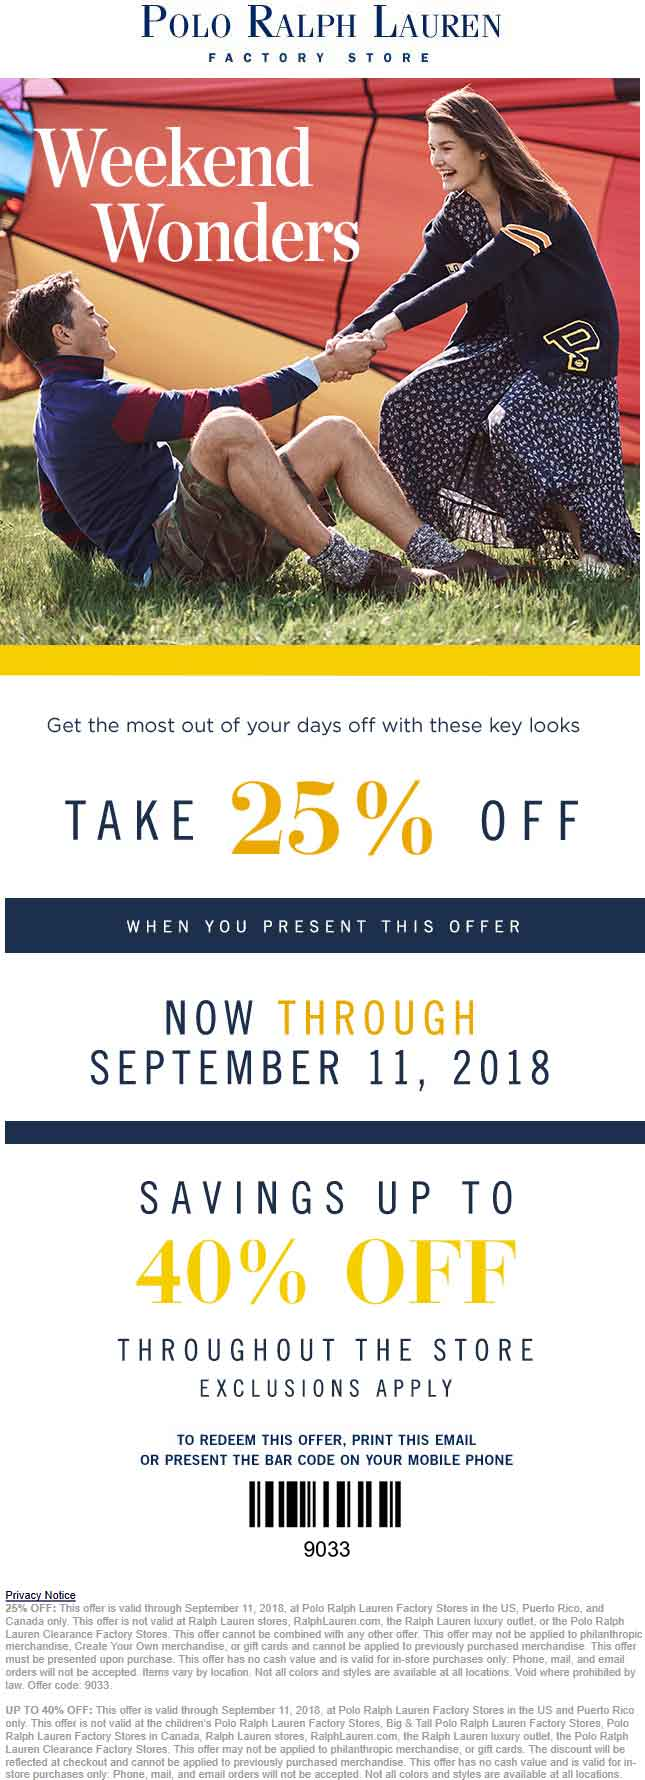 Polo Ralph Lauren Factory Coupon May 2020 25% off & more at Polo Ralph Lauren Factory